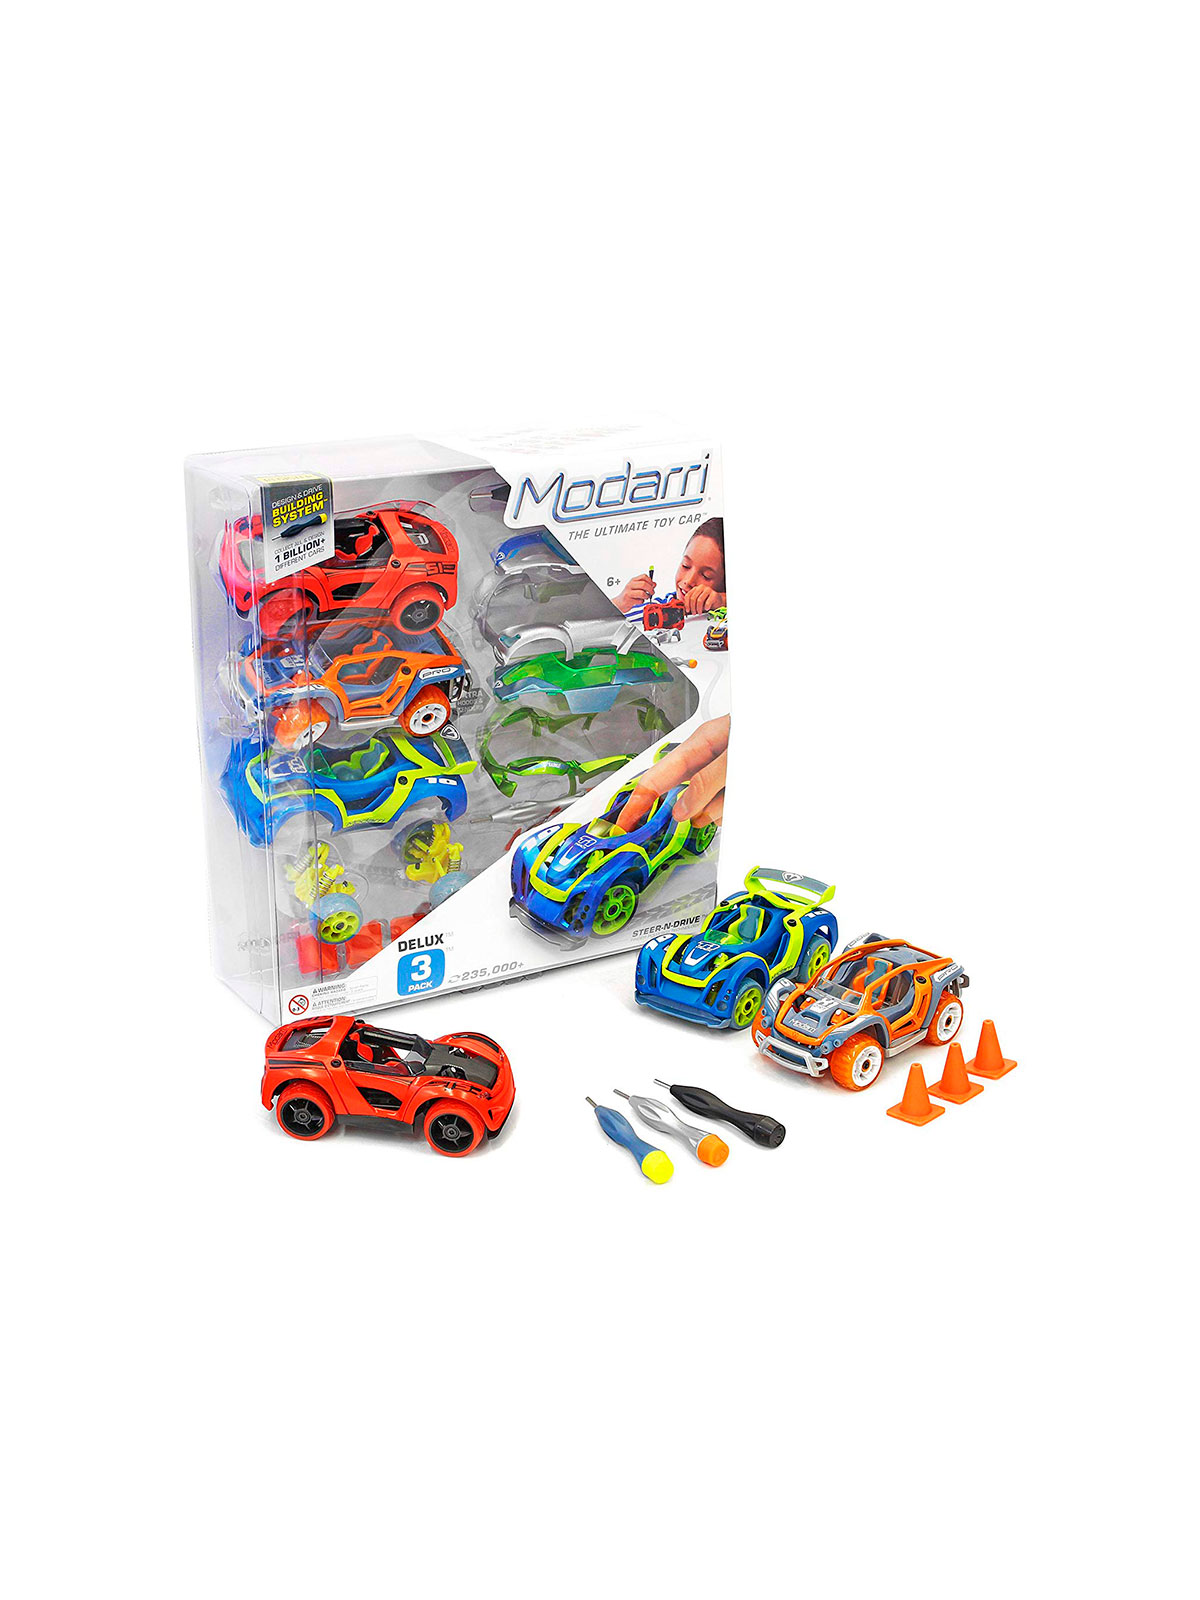 Modarri Build Your Toy Car Kit